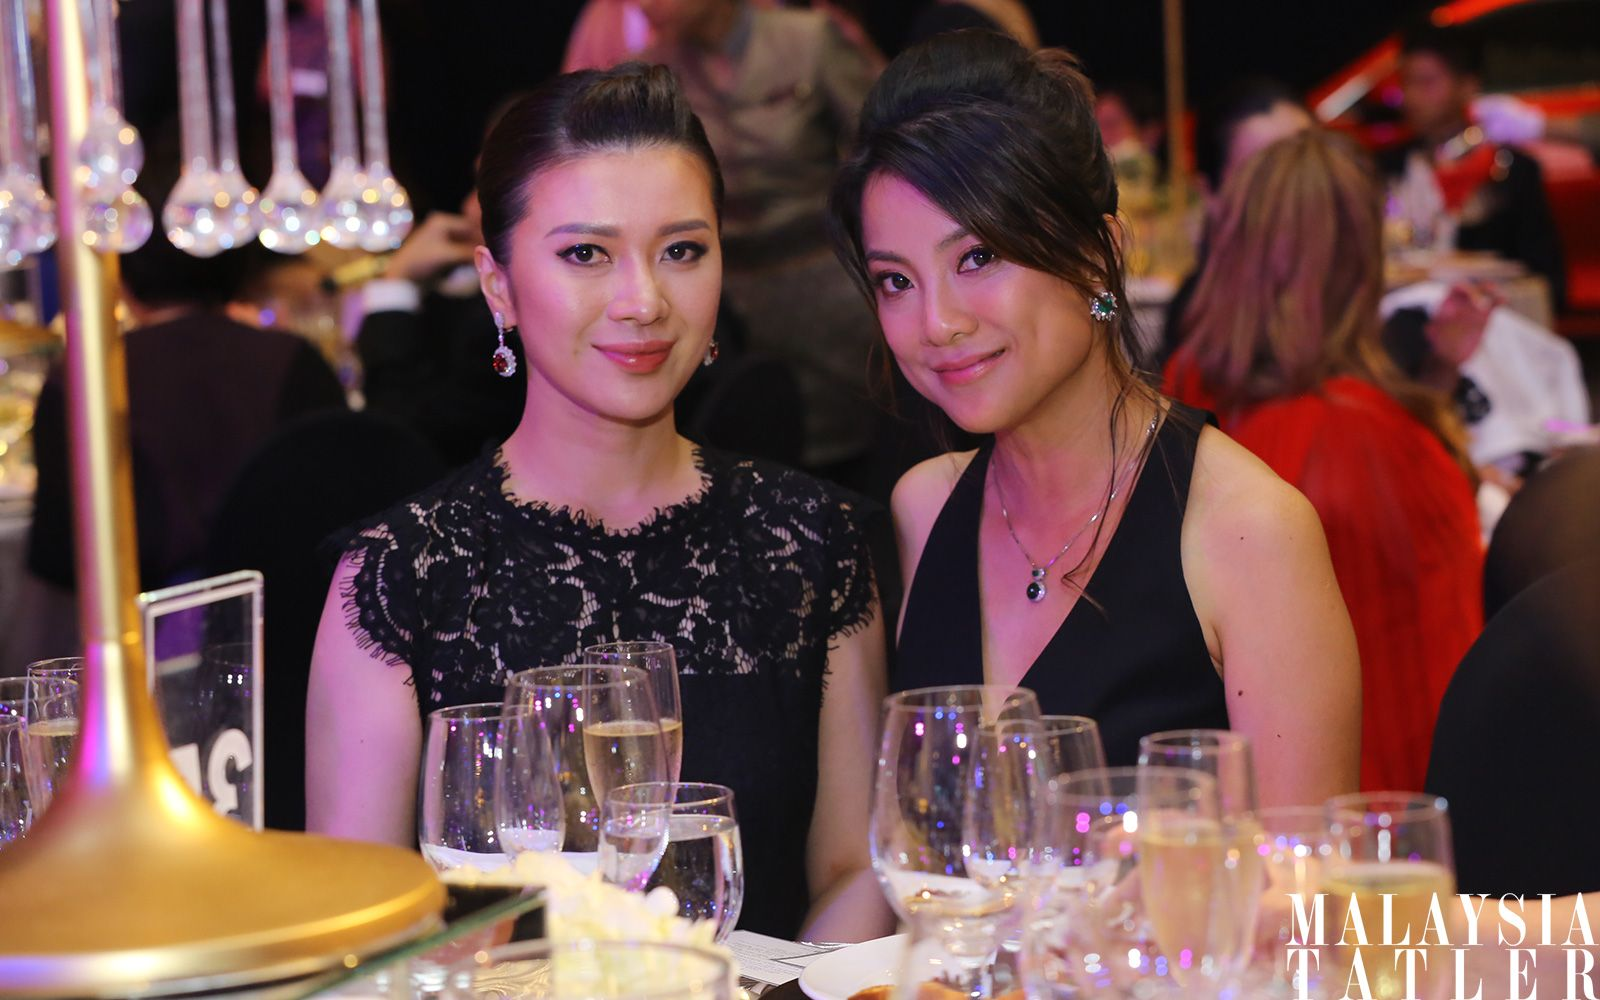 Michelle Ang and Lee Huei Min